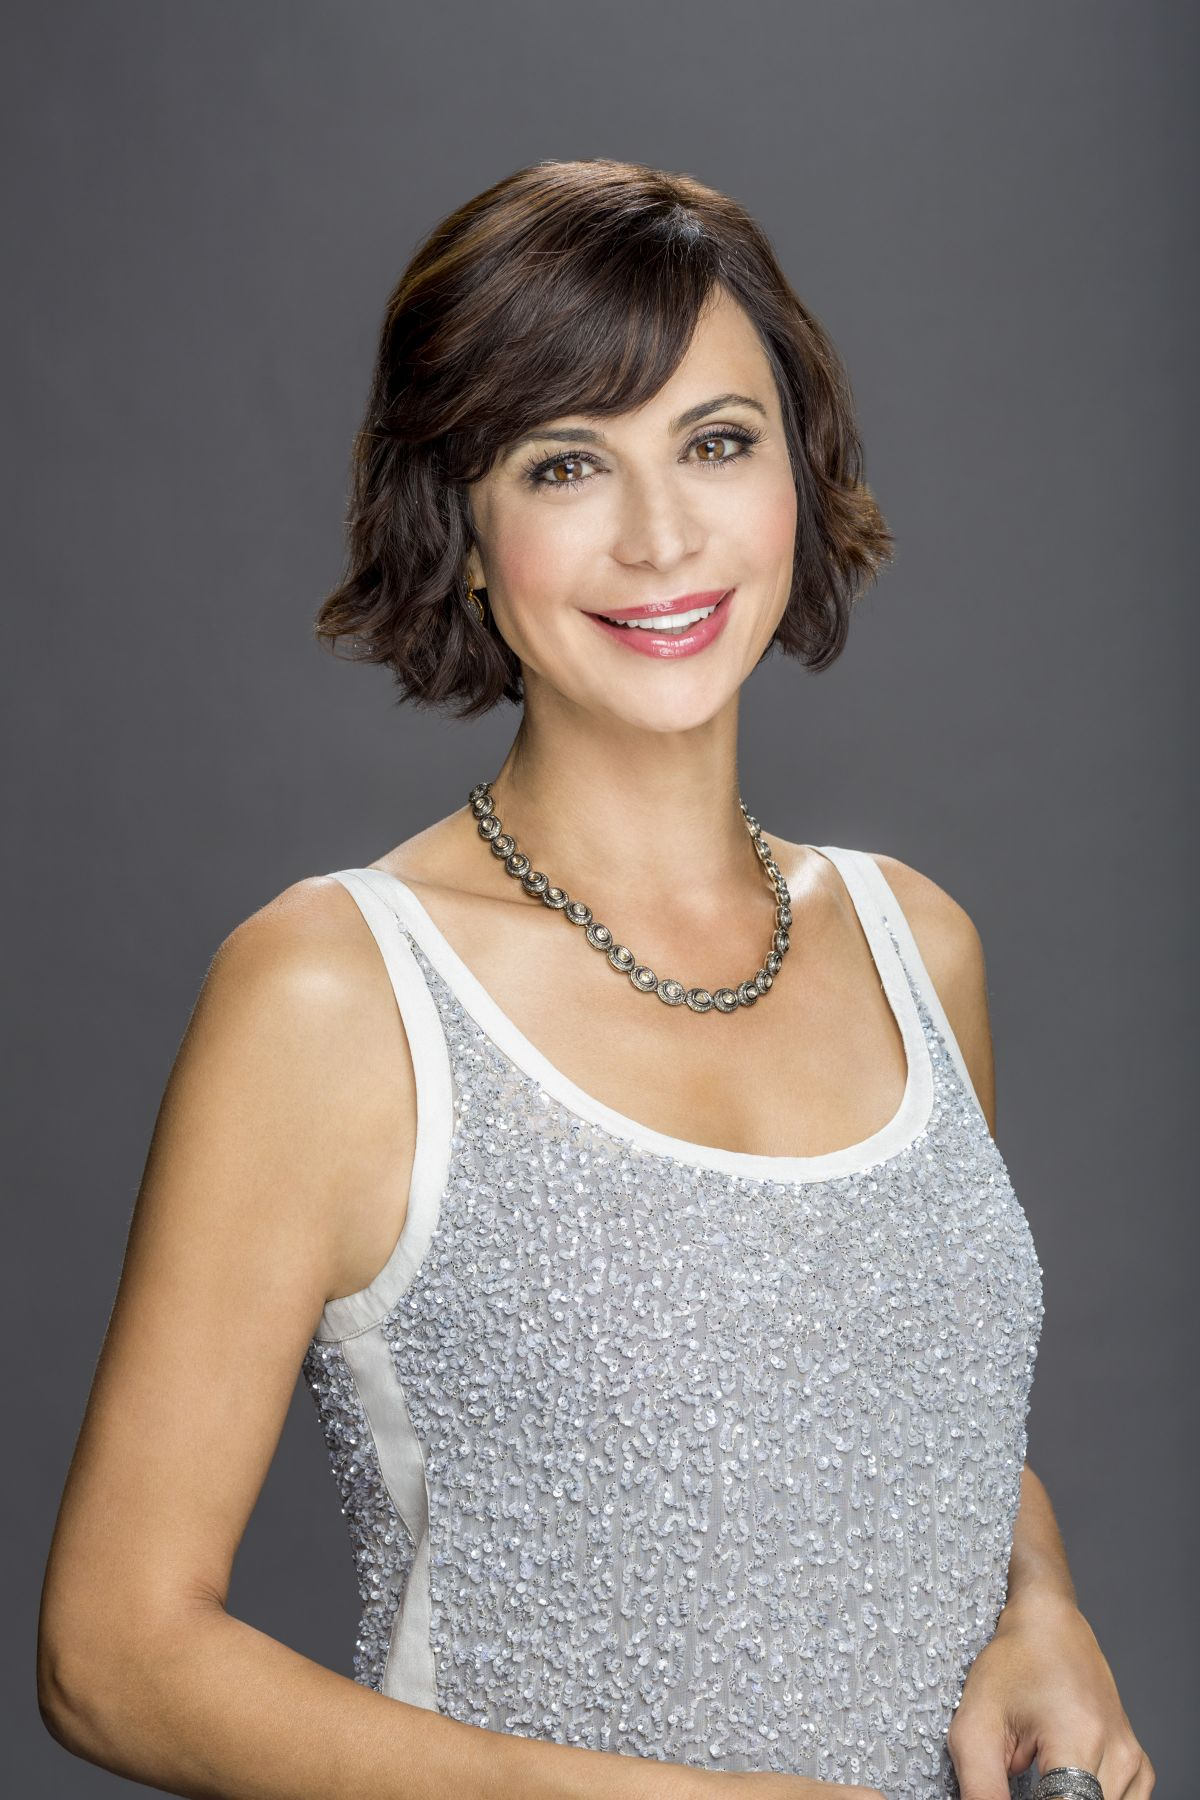 catherine bell 2015catherine bell instagram, catherine bell 2015, catherine bell 2016, catherine bell wallpaper, catherine bell photo, catherine bell jim carrey, catherine bell interview, catherine bell, catherine bell imdb, catherine bell jag, catherine bell 2014, catherine bell wiki, catherine bell facebook, catherine bell twitter